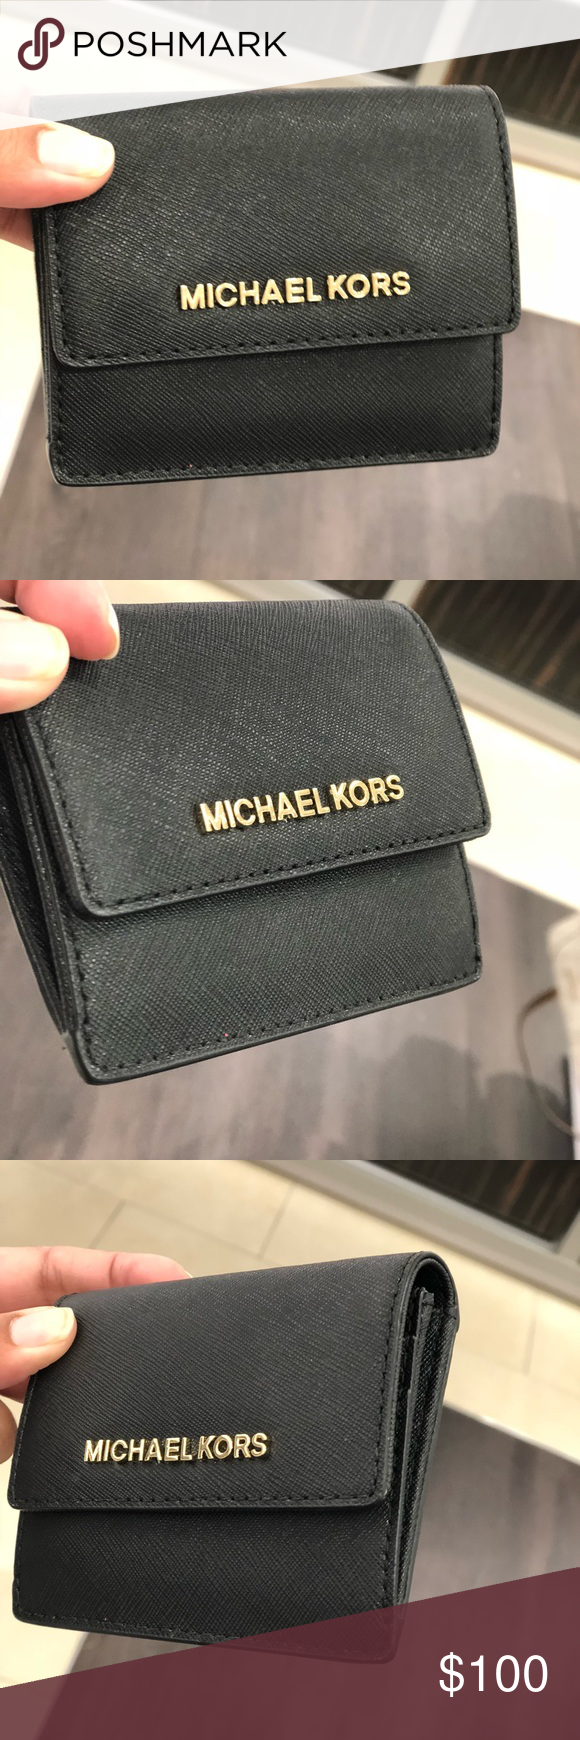 9f23399071cd Michael kors jet set travel ID card case keyholder NWT MICHAEL MICHAEL KORS  JET SET TRAVEL CARD CASE ID KEY HOLDER IN Black RETAIL $118.00+ tax NEW W/  TAG, ...